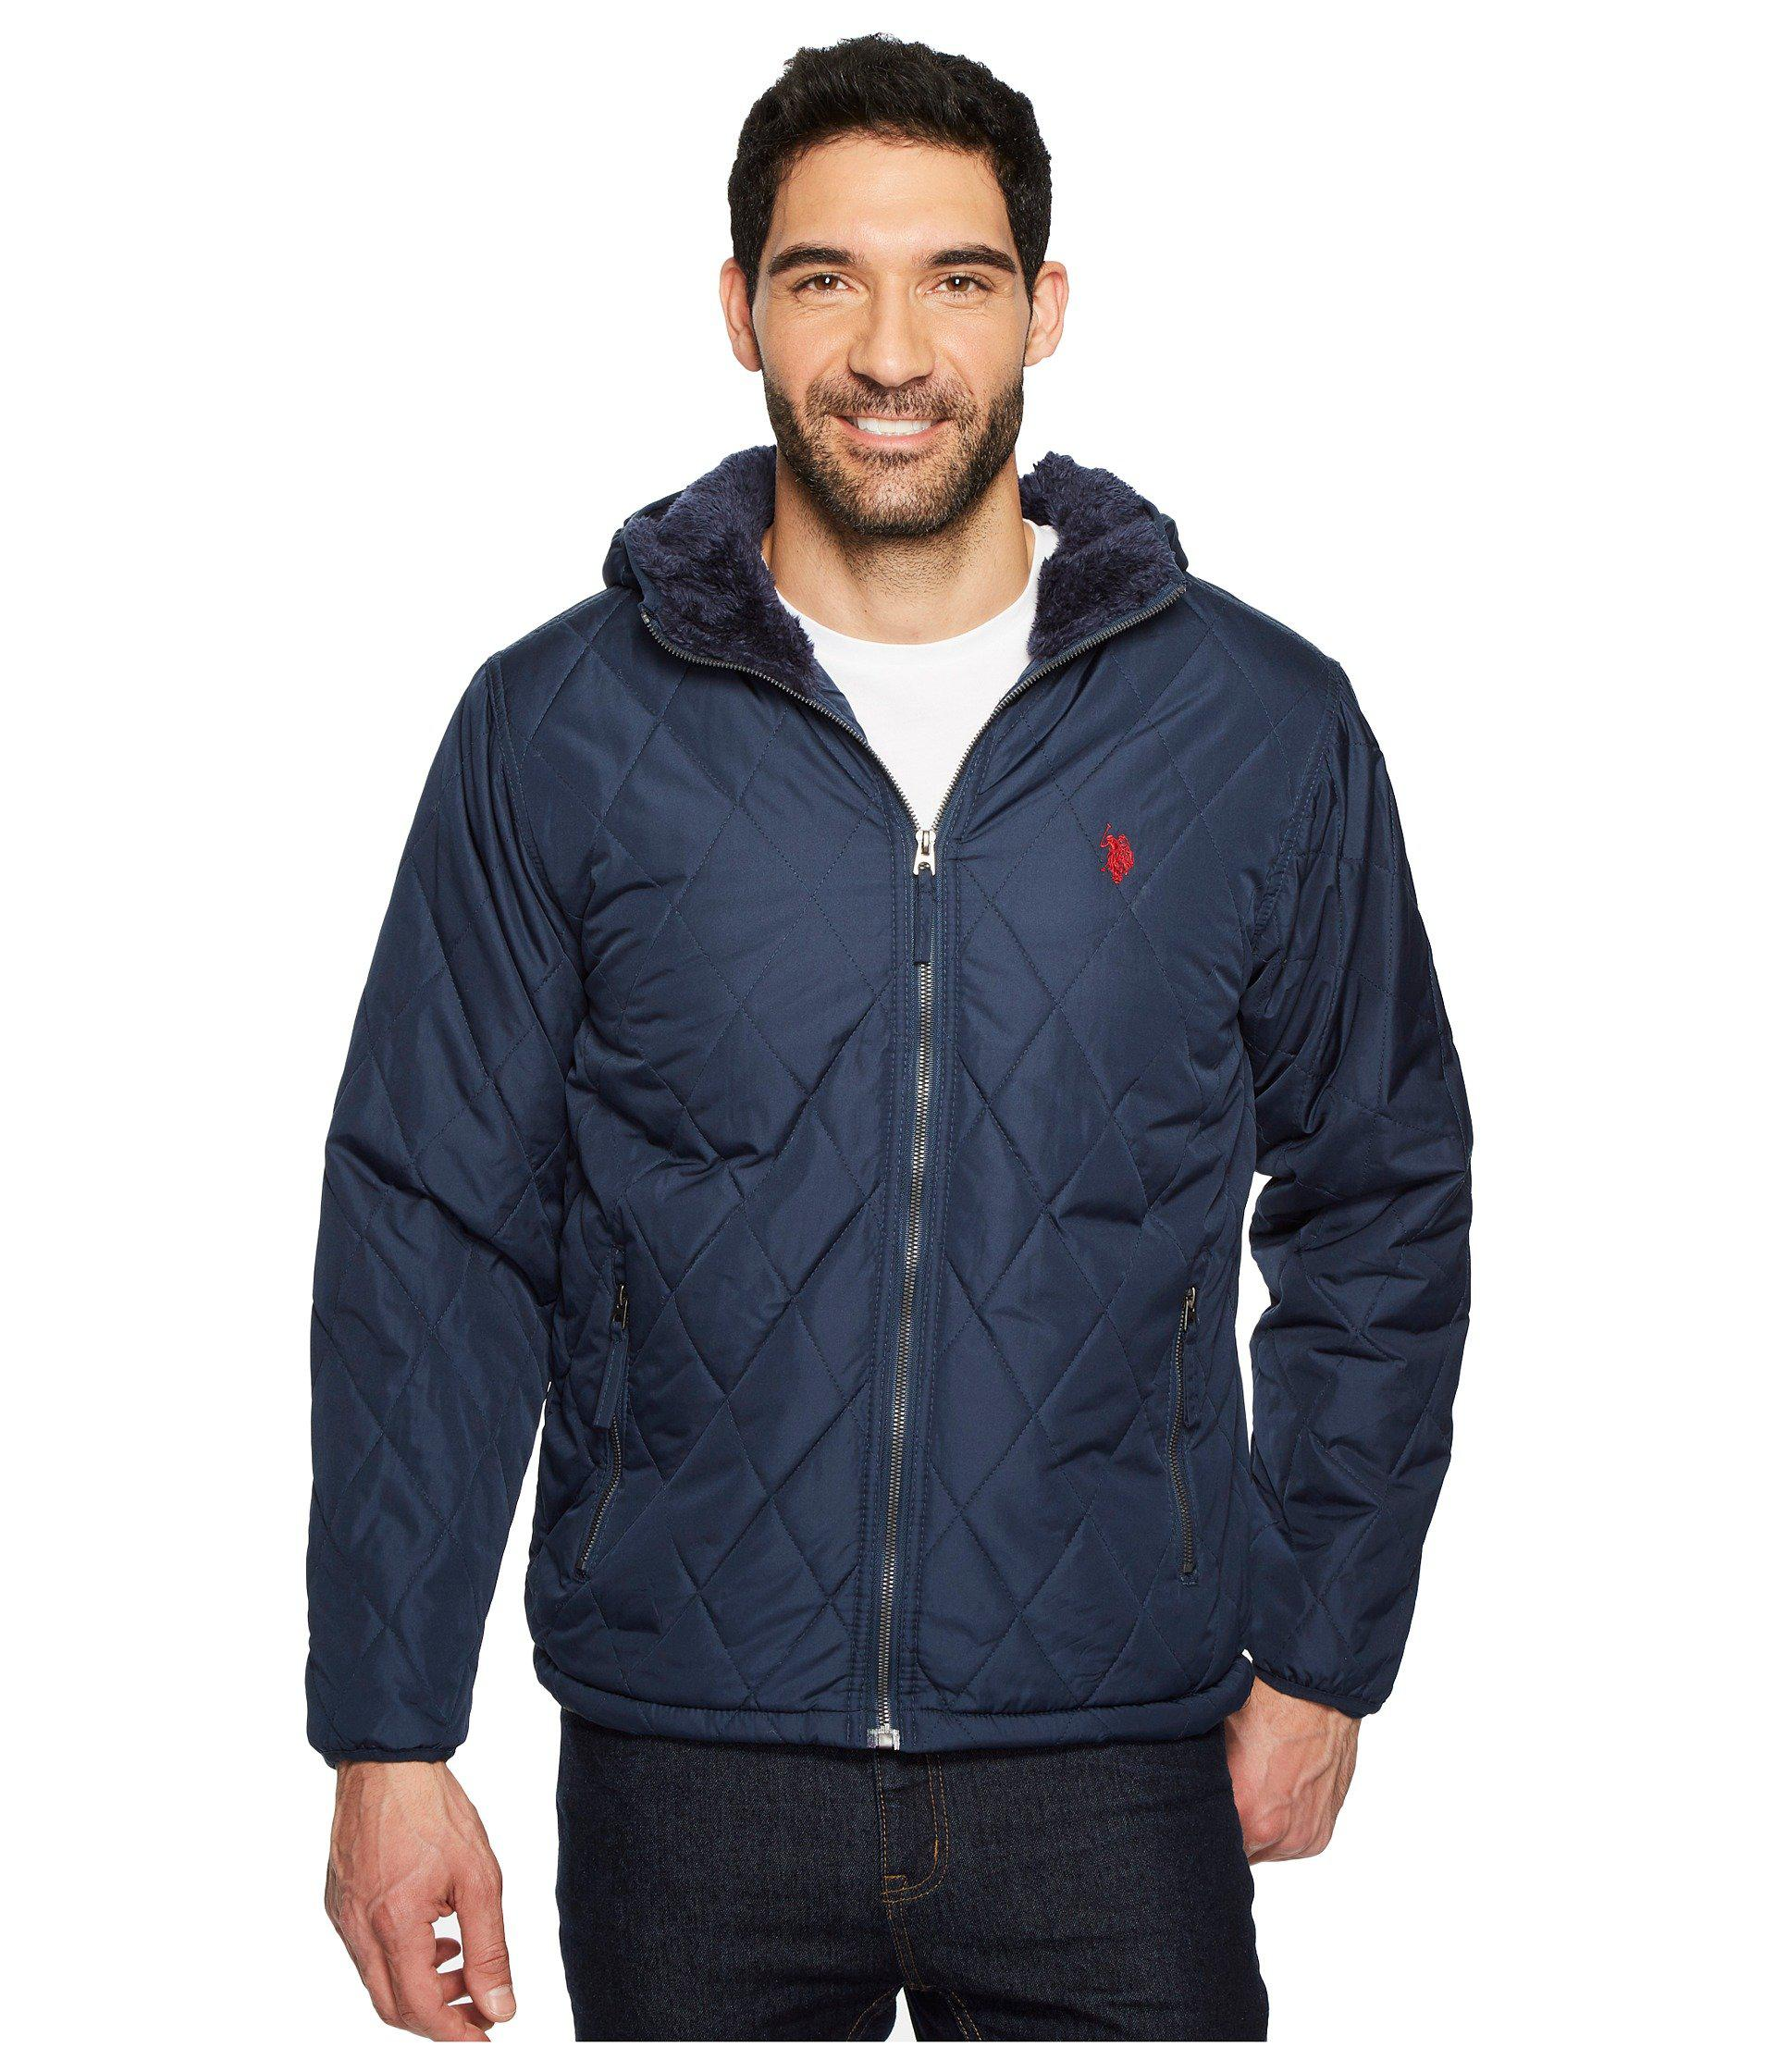 Mens Hoody Padded Jacket U.S.Polo Association Outlet Discounts Supply TkVbQGxH5r